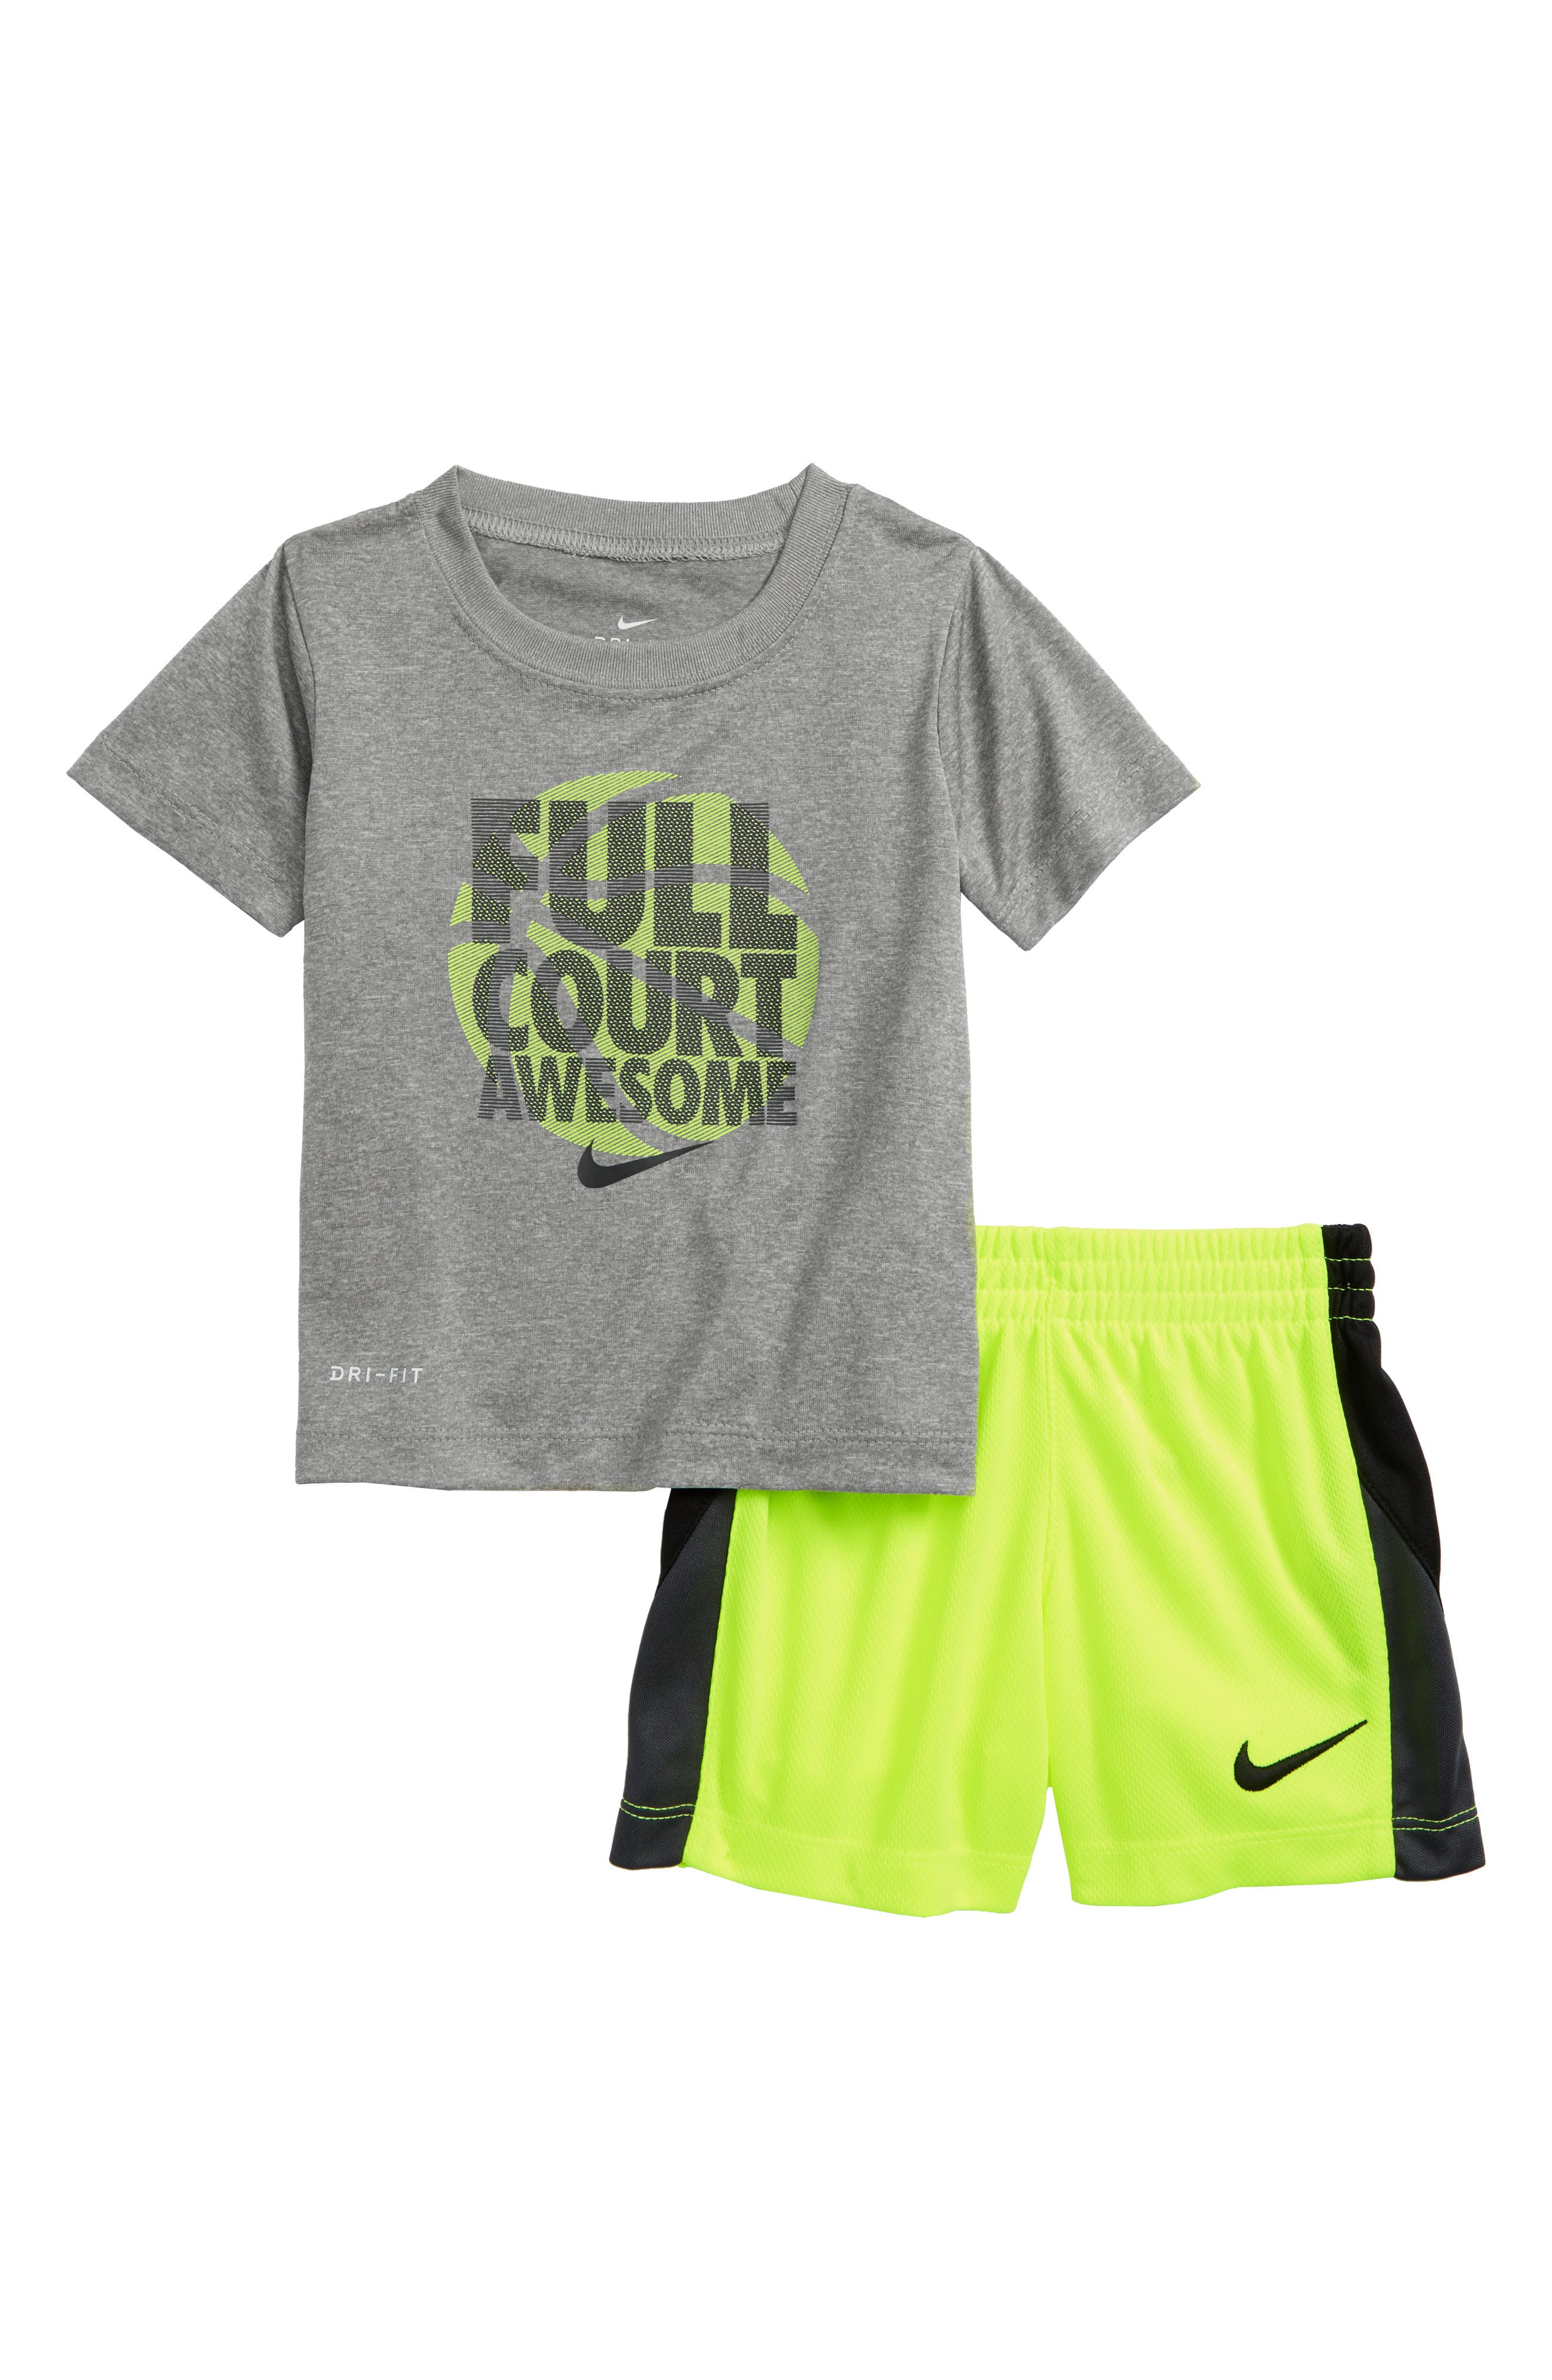 Dry Full Court Awesome Shirt & Shorts Set,                             Main thumbnail 1, color,                             088